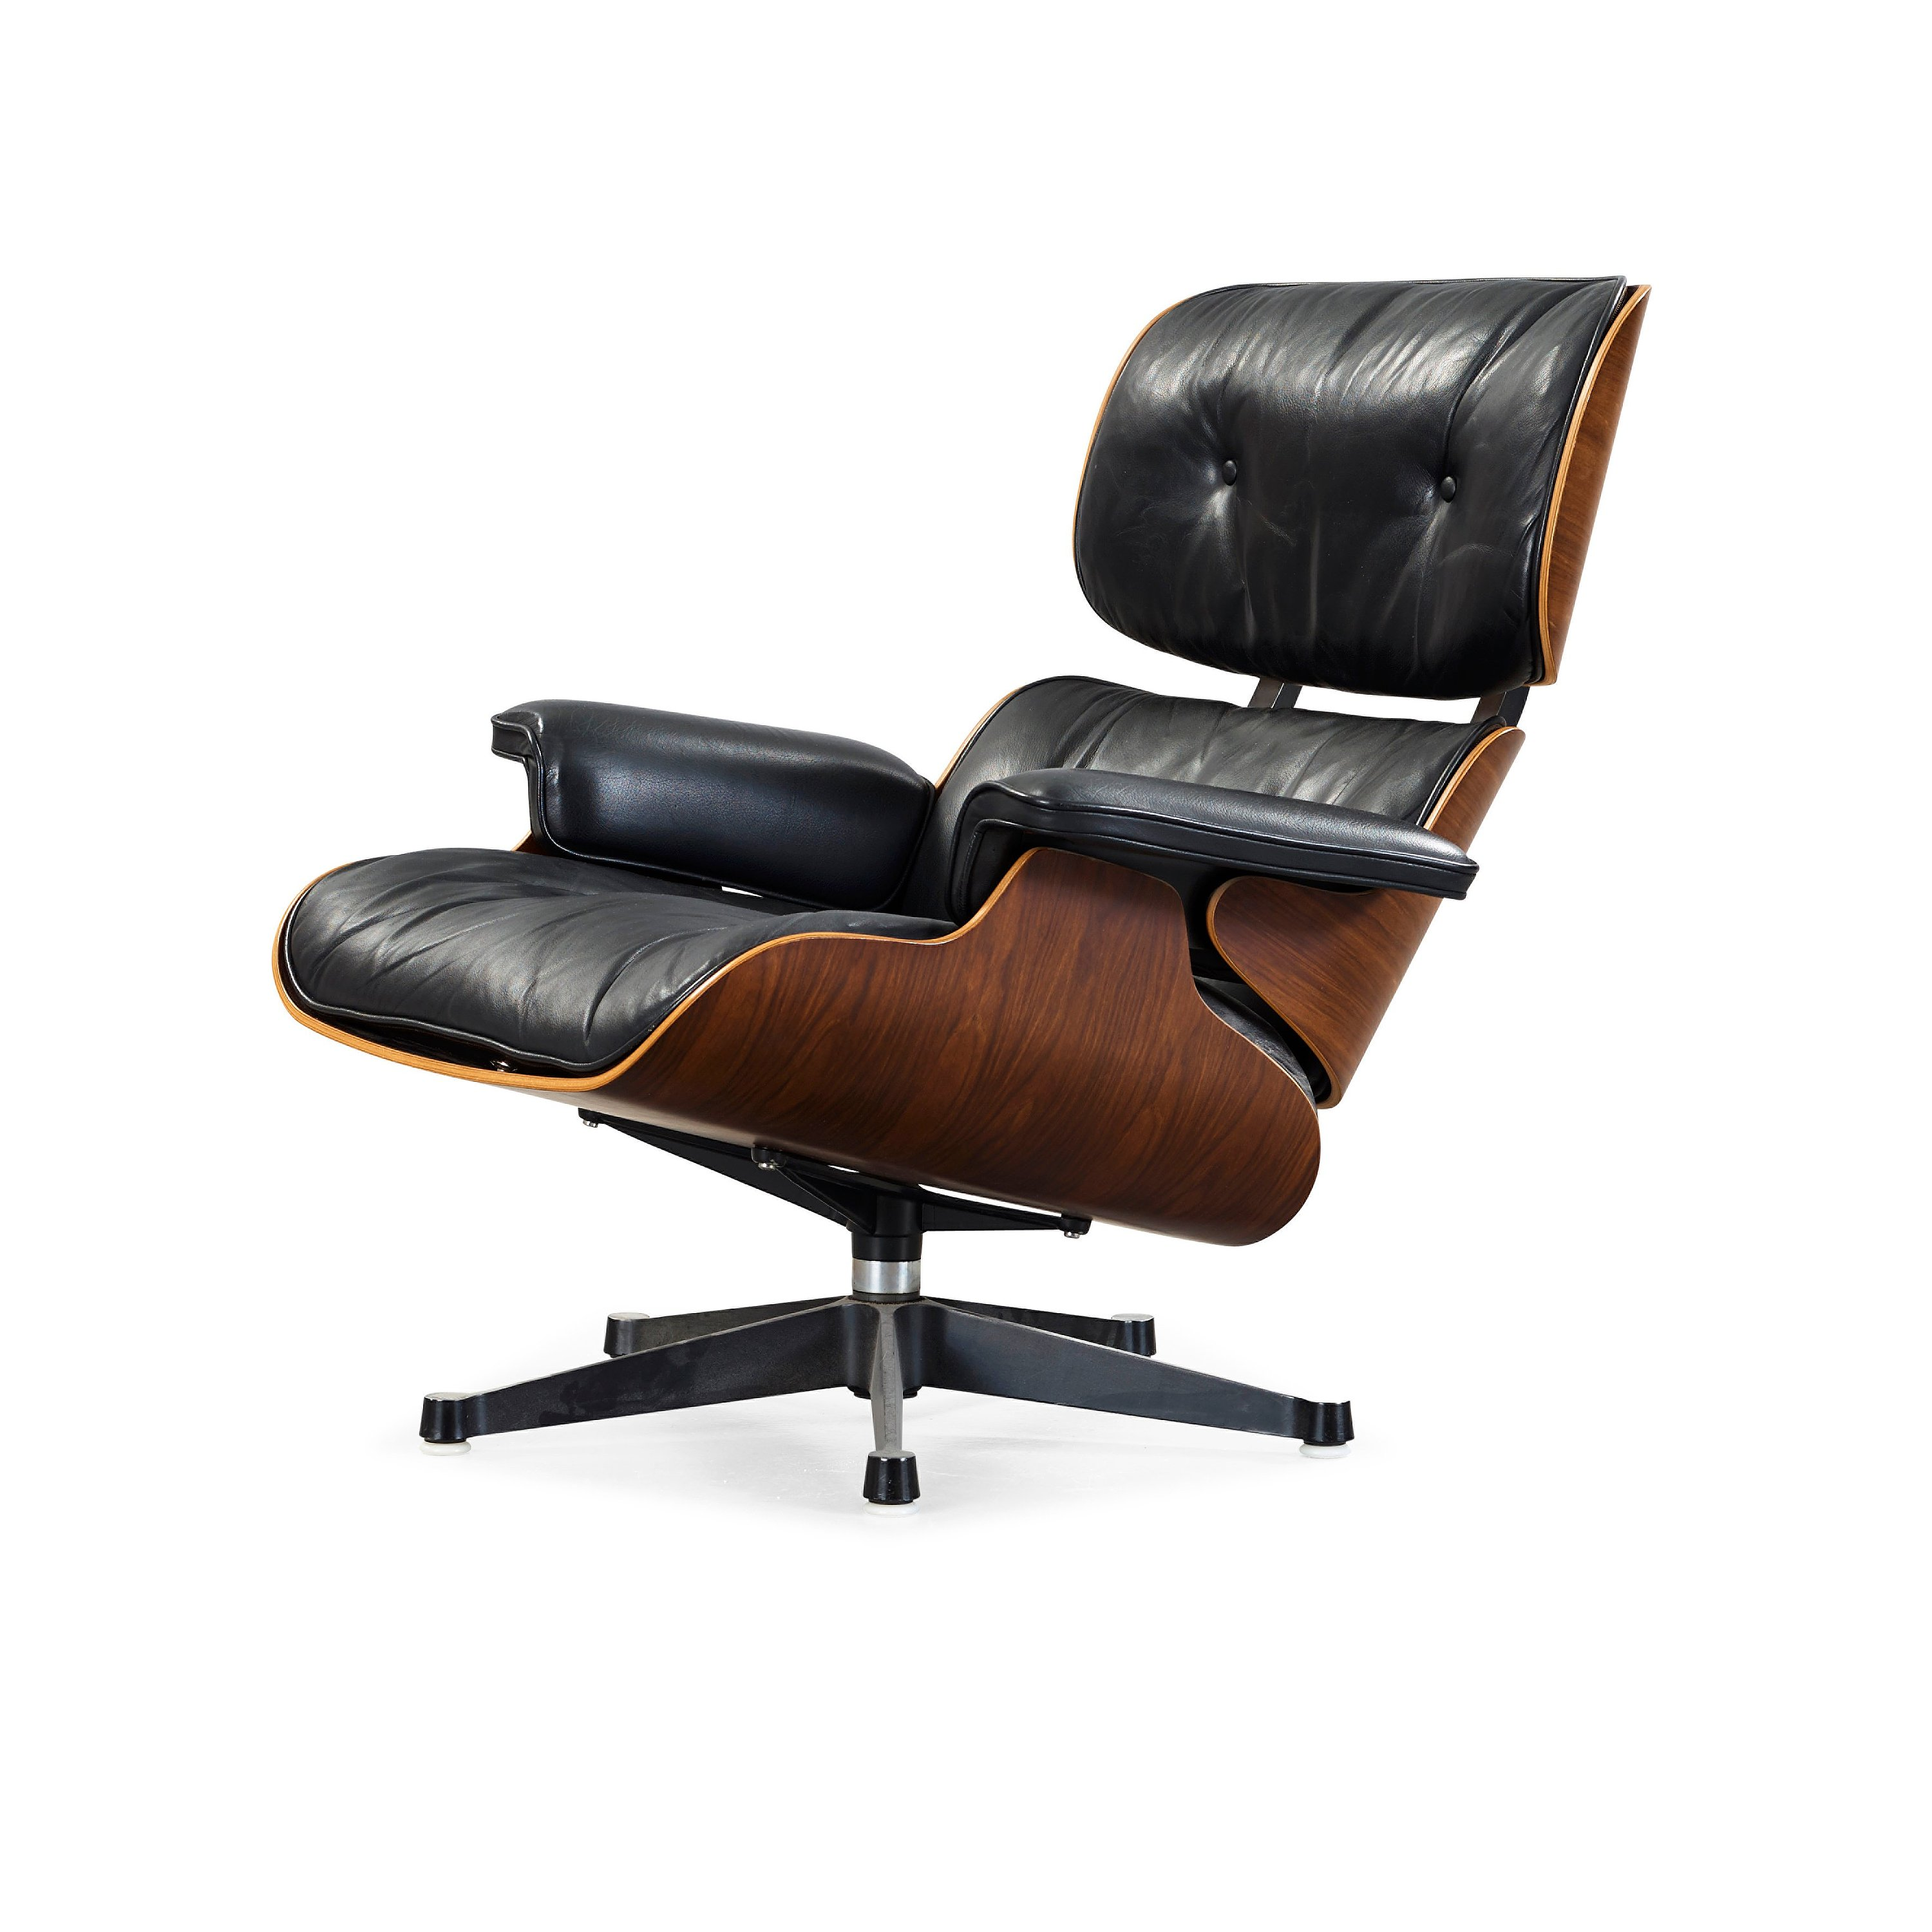 Eames Lounge Sessel A Charles Ray Eames Lounge Chair Vitra Bukowskis